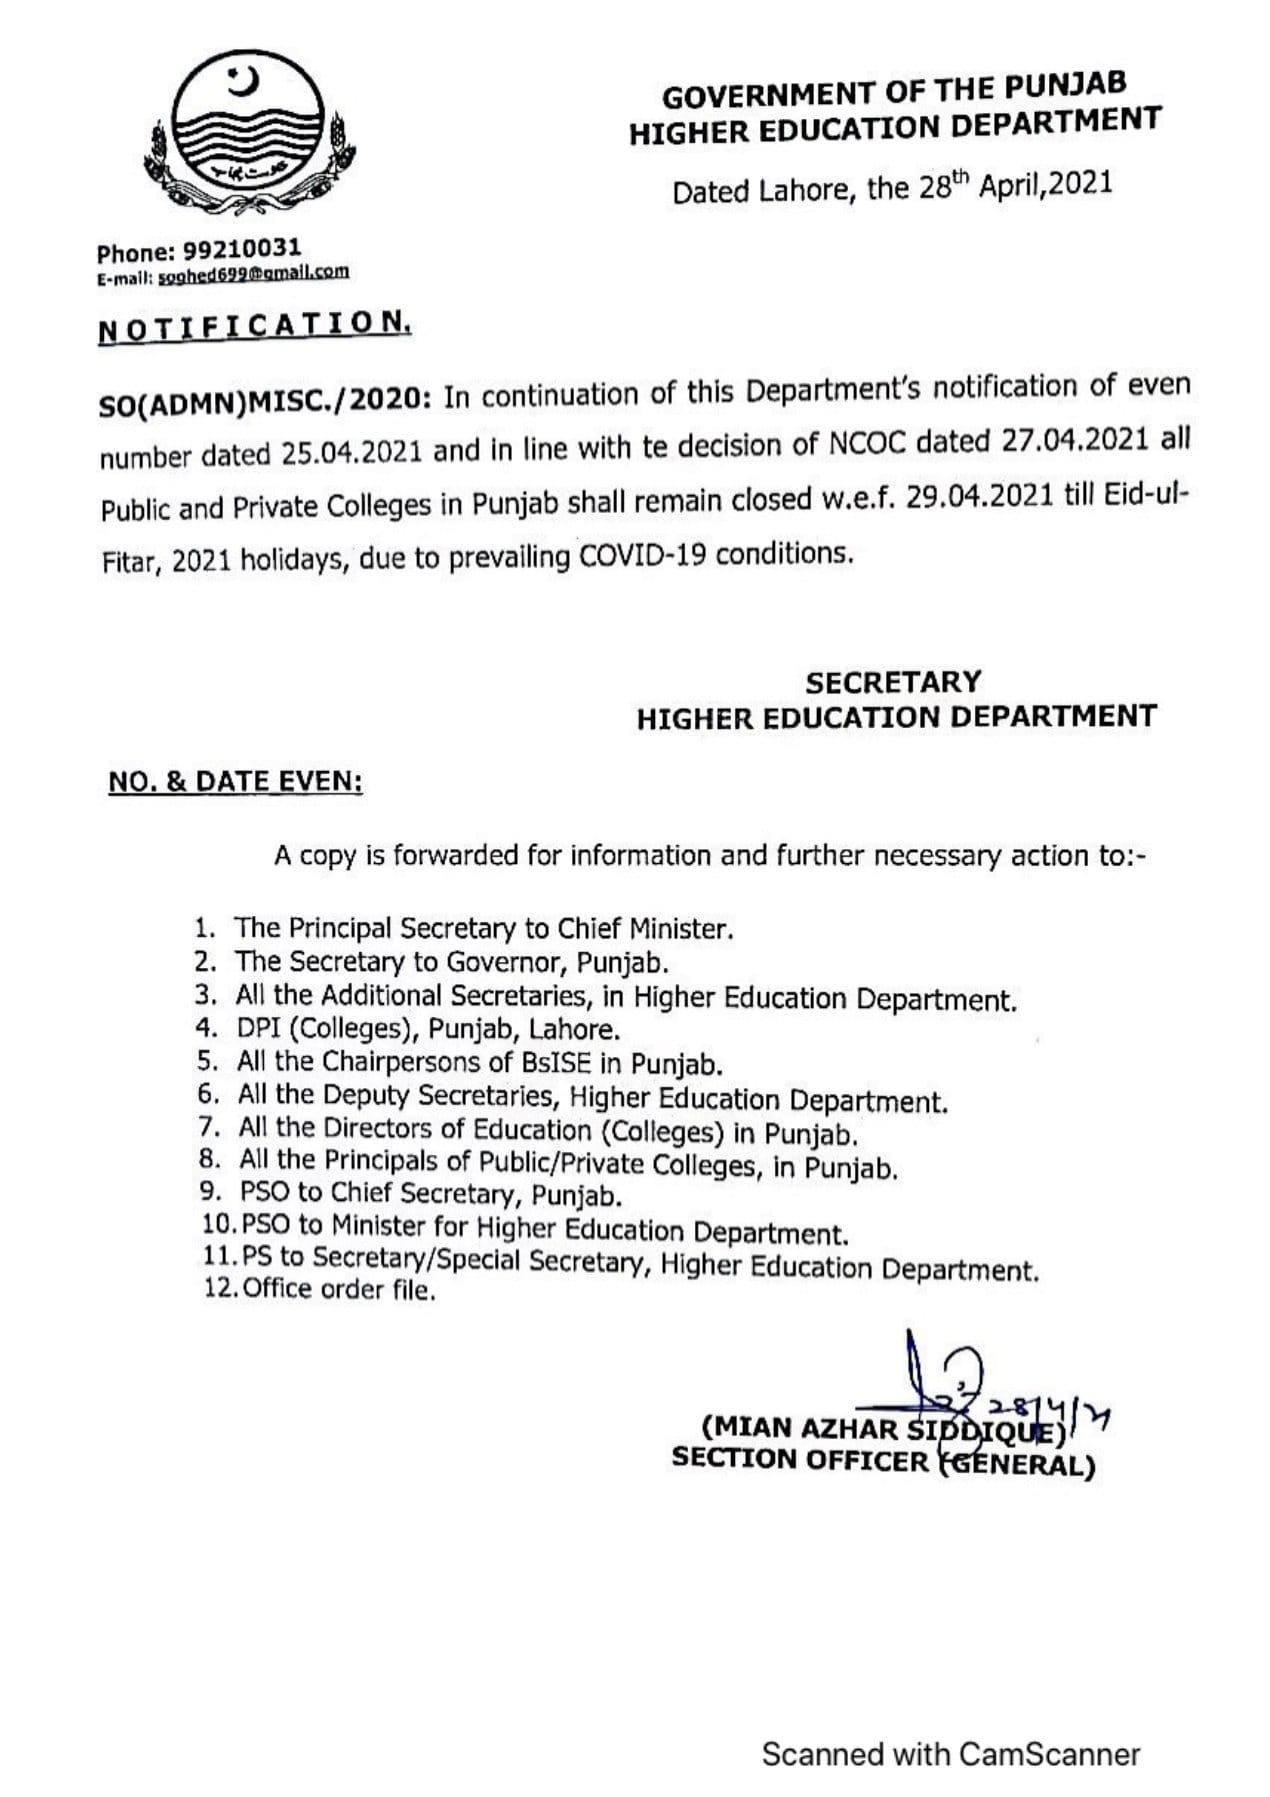 New HED Punjab Notification of Closing All Punjab Educational Institutions